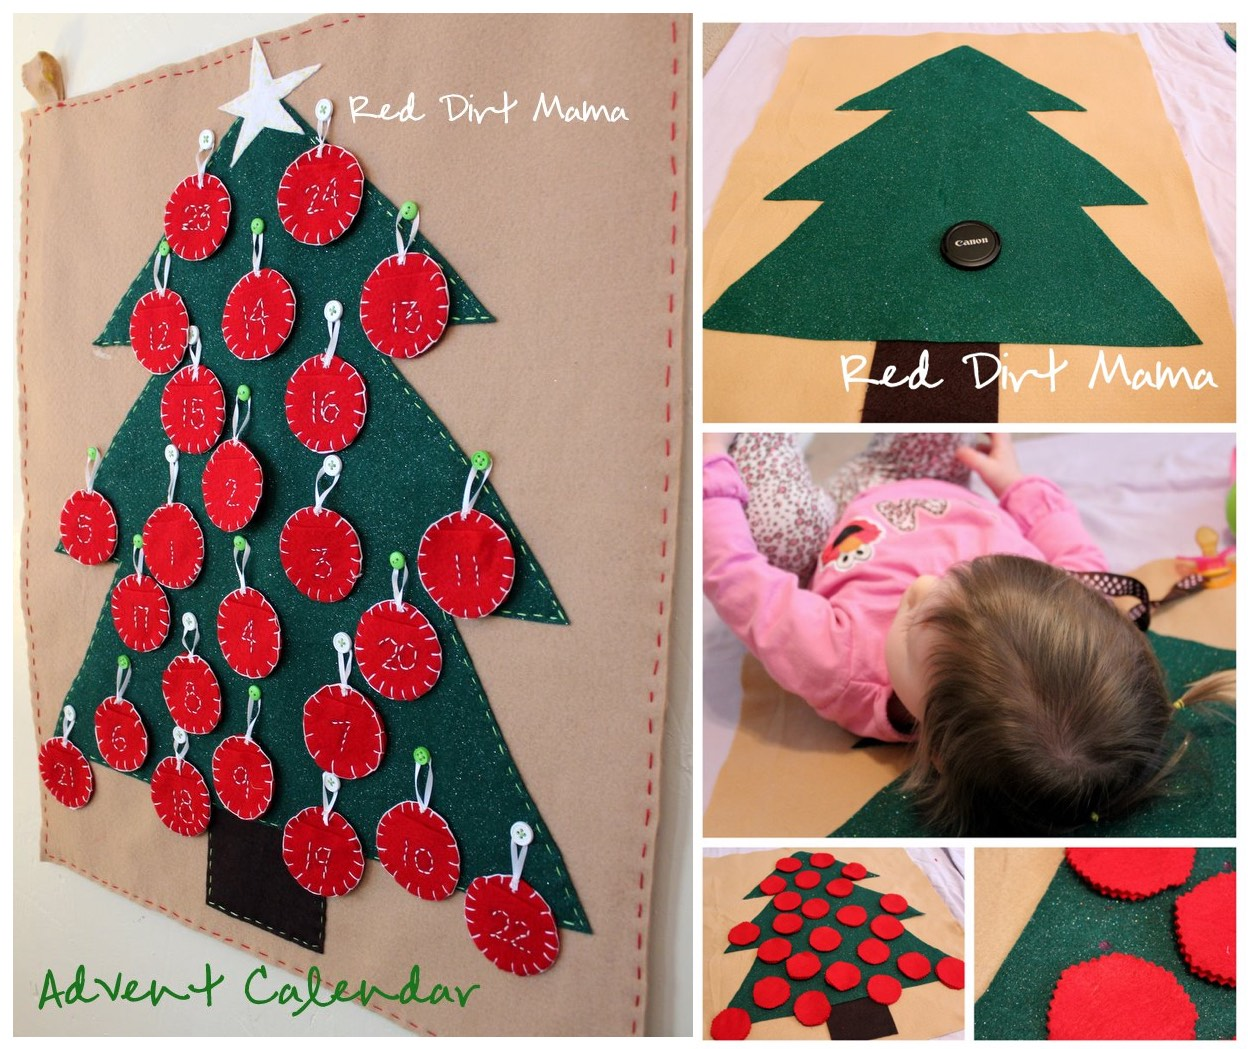 Preschool Xmas Calendar Ideas : Top ideas for the best diy advent calendar kids